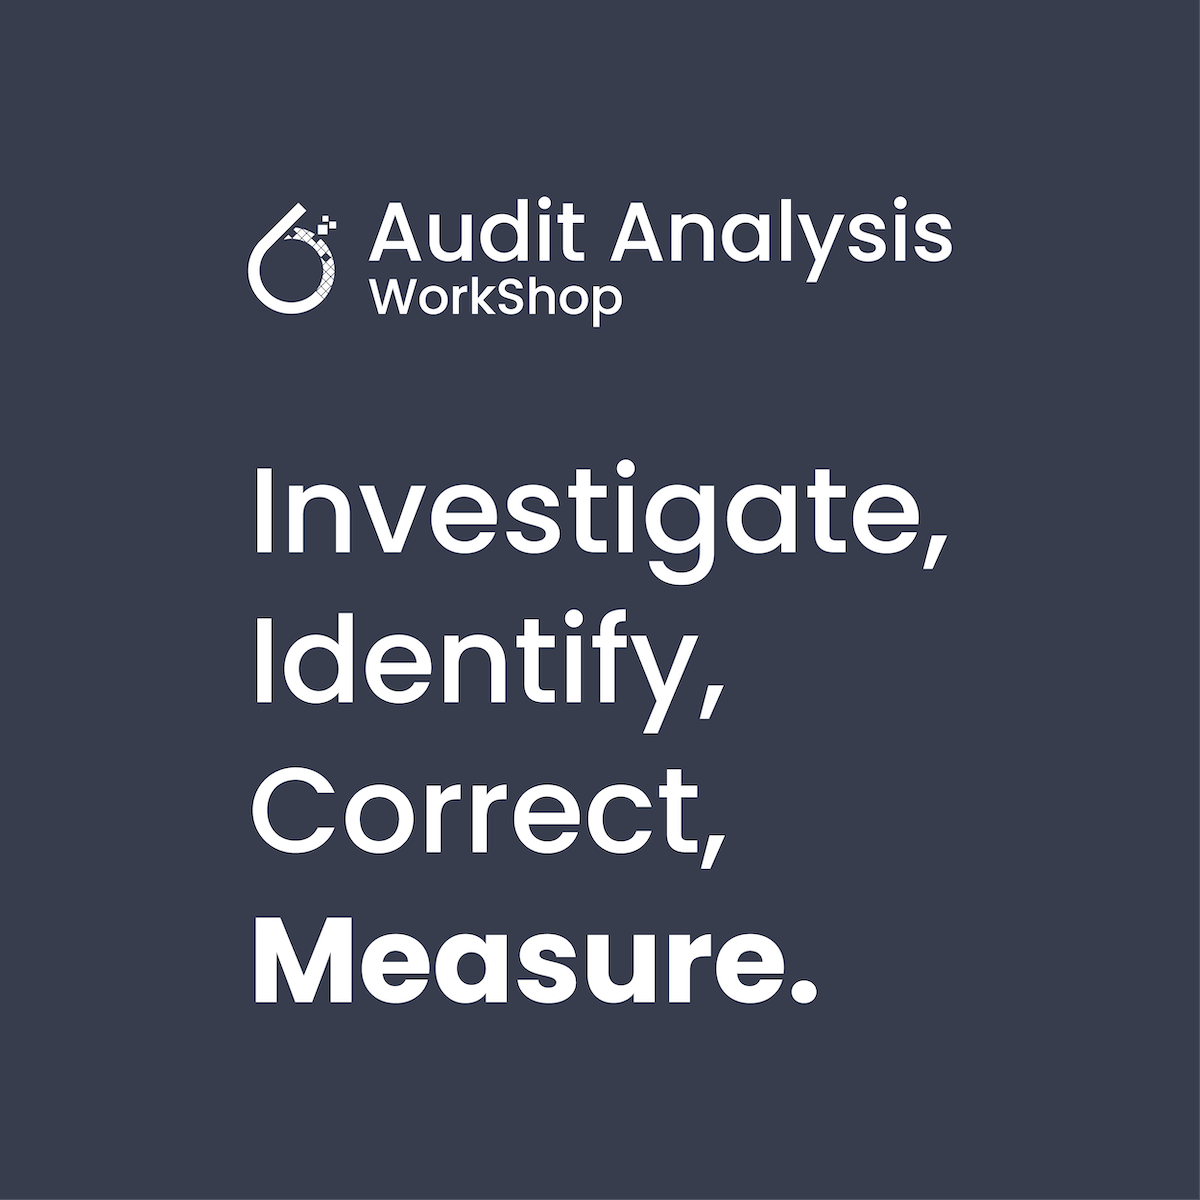 Audit Analysis